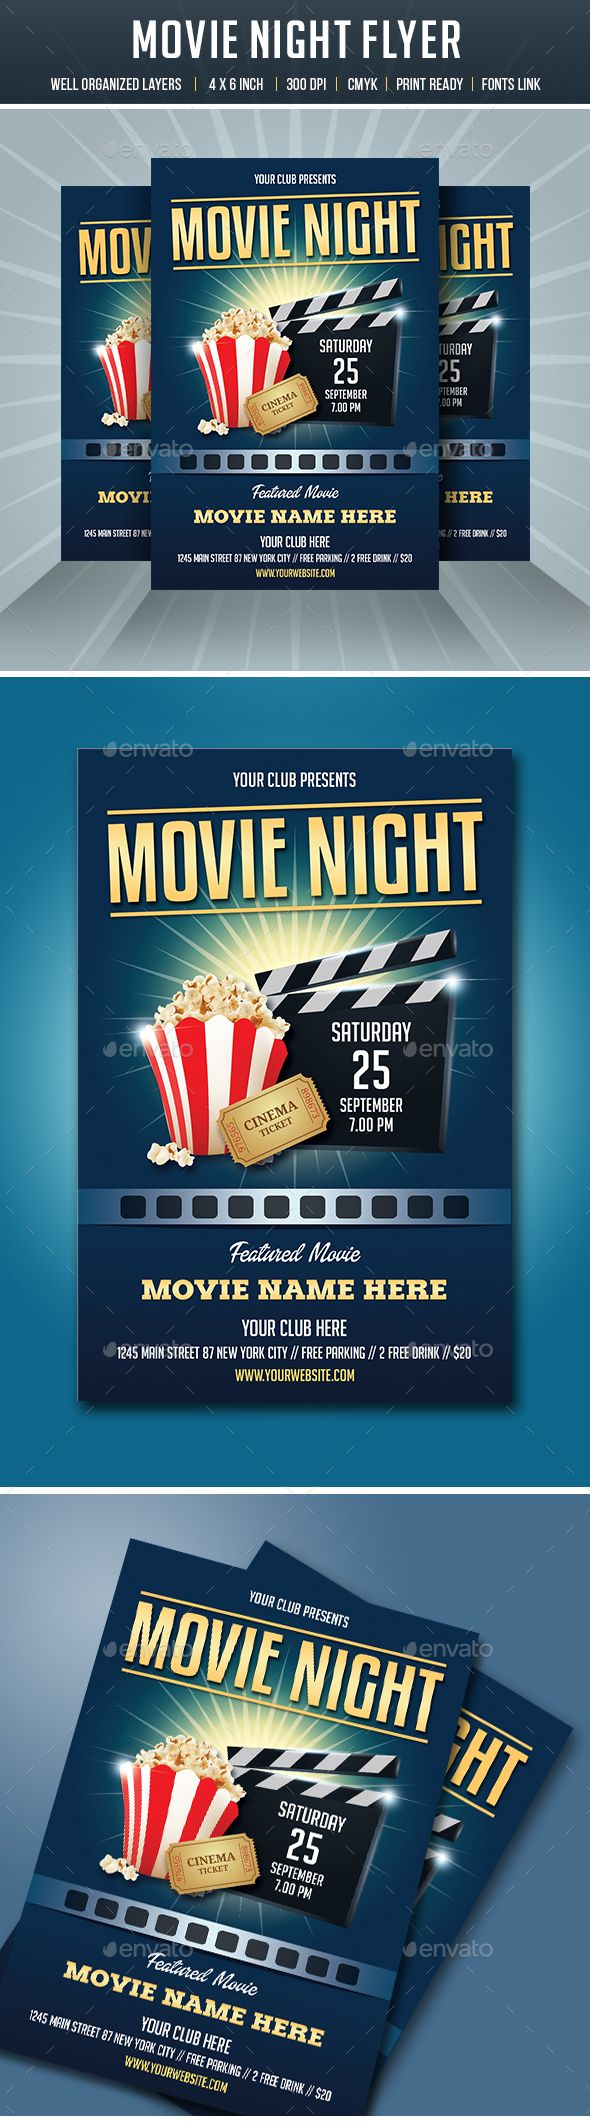 Free movie night flyer template erkalnathandedecker movie night flyer flyer template template and font logo maxwellsz